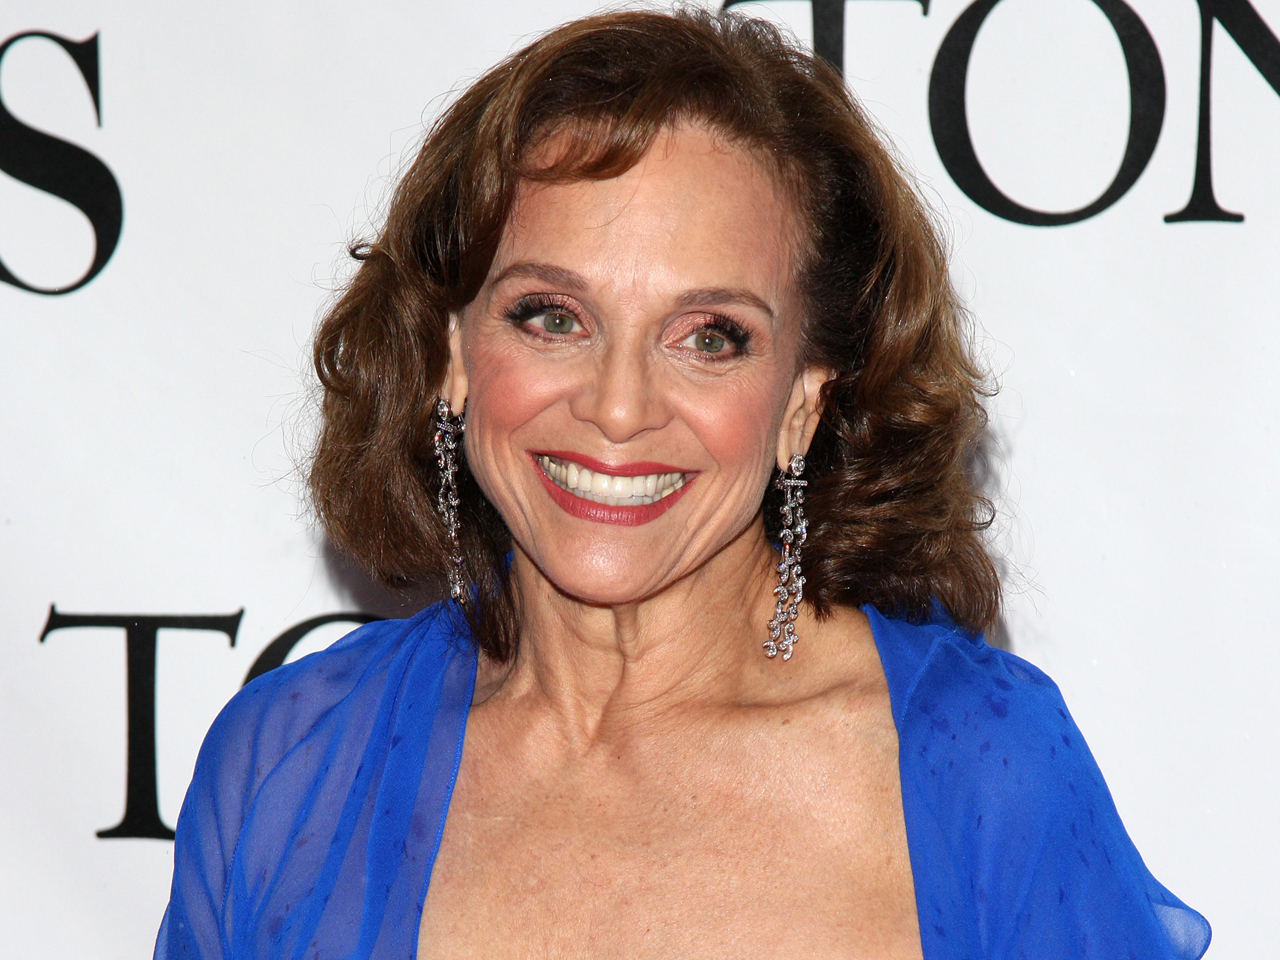 valerie harper 2015valerie harper show, valerie harper, valerie harper cancer, valerie harper died, valerie harper update, valerie harper health, valerie harper news, valerie harper 2015, valerie harper death, valerie harper brain cancer, valerie harper net worth, valerie harper lung cancer, valerie harper today, valerie harper 2016, valerie harper age, valerie harper imdb, valerie harper health update, valerie harper 2014, valerie harper latest news, valerie harper coma